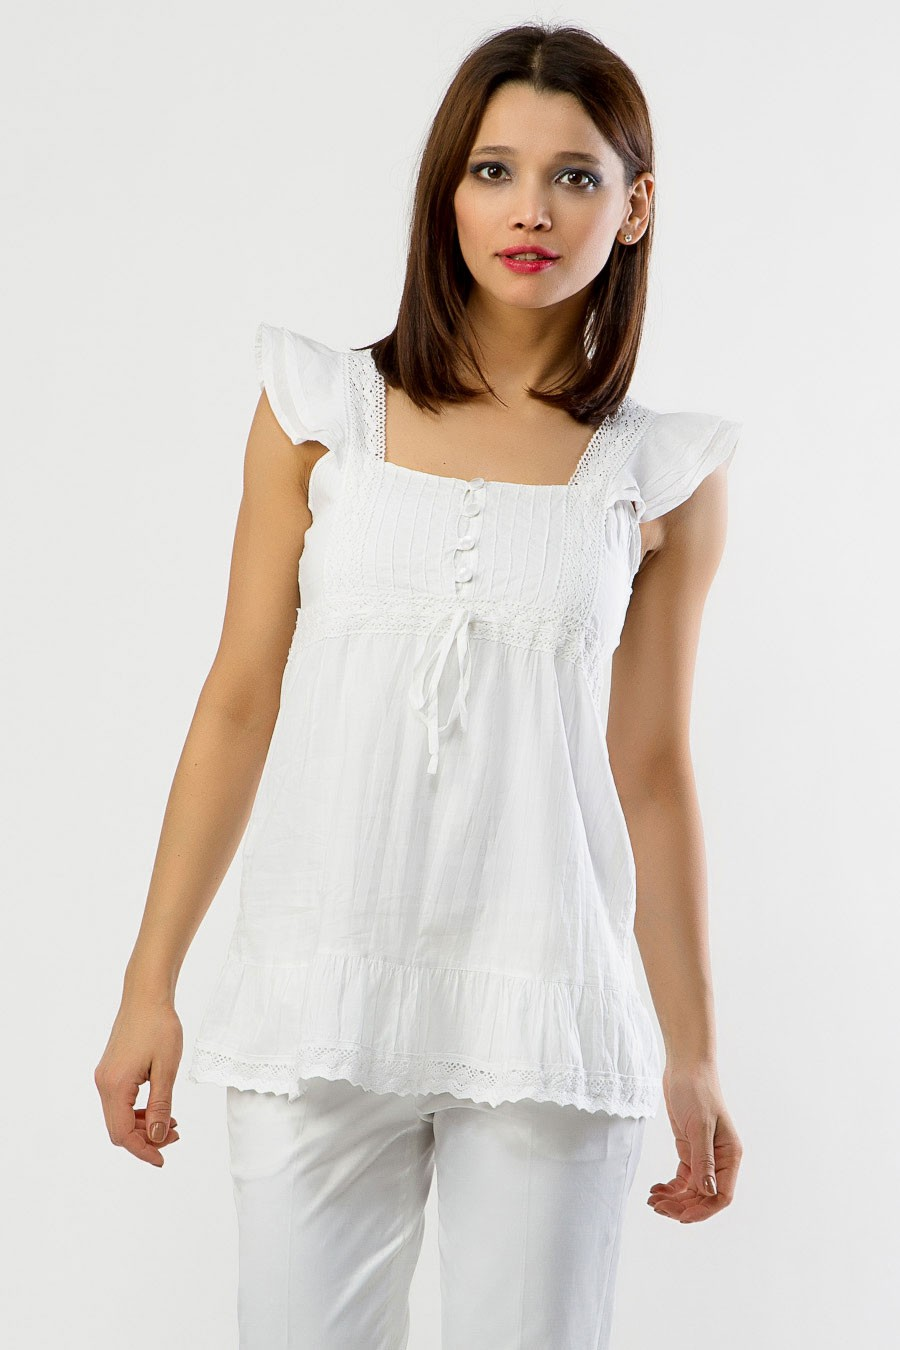 You searched for: white cotton top! Etsy is the home to thousands of handmade, vintage, and one-of-a-kind products and gifts related to your search. No matter what you're looking for or where you are in the world, our global marketplace of sellers can help you find unique and affordable options. Let's get started!